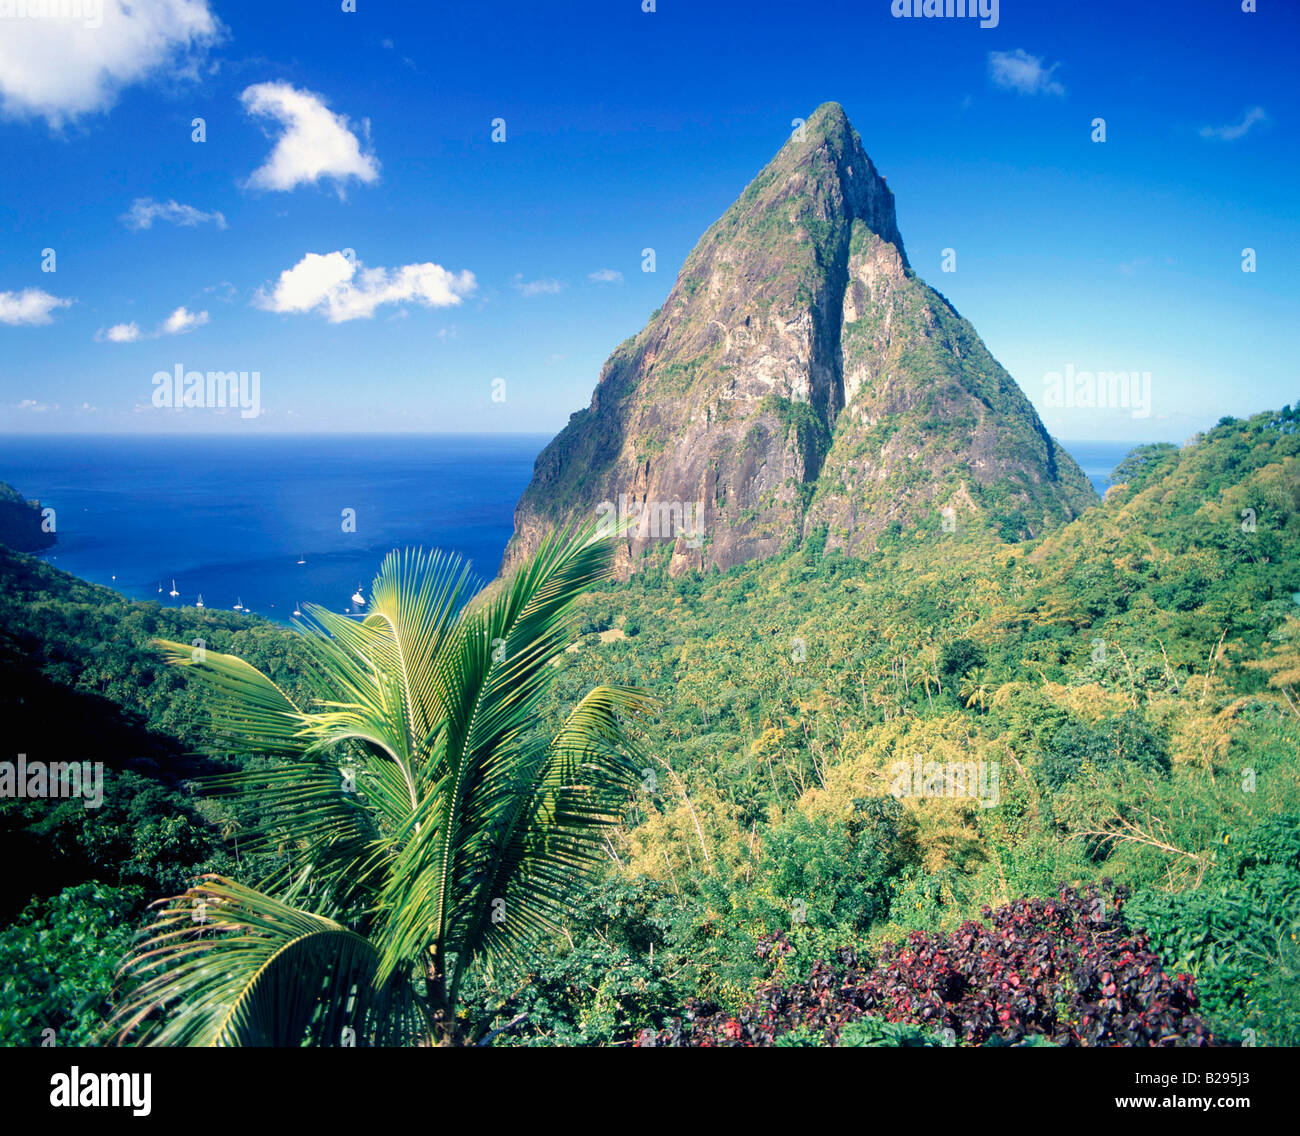 ST Lucia The Pitons Date 05 06 2008 Ref ZB726 114635 0020 COMPULSORY CREDIT World Pictures Photoshot - Stock Image